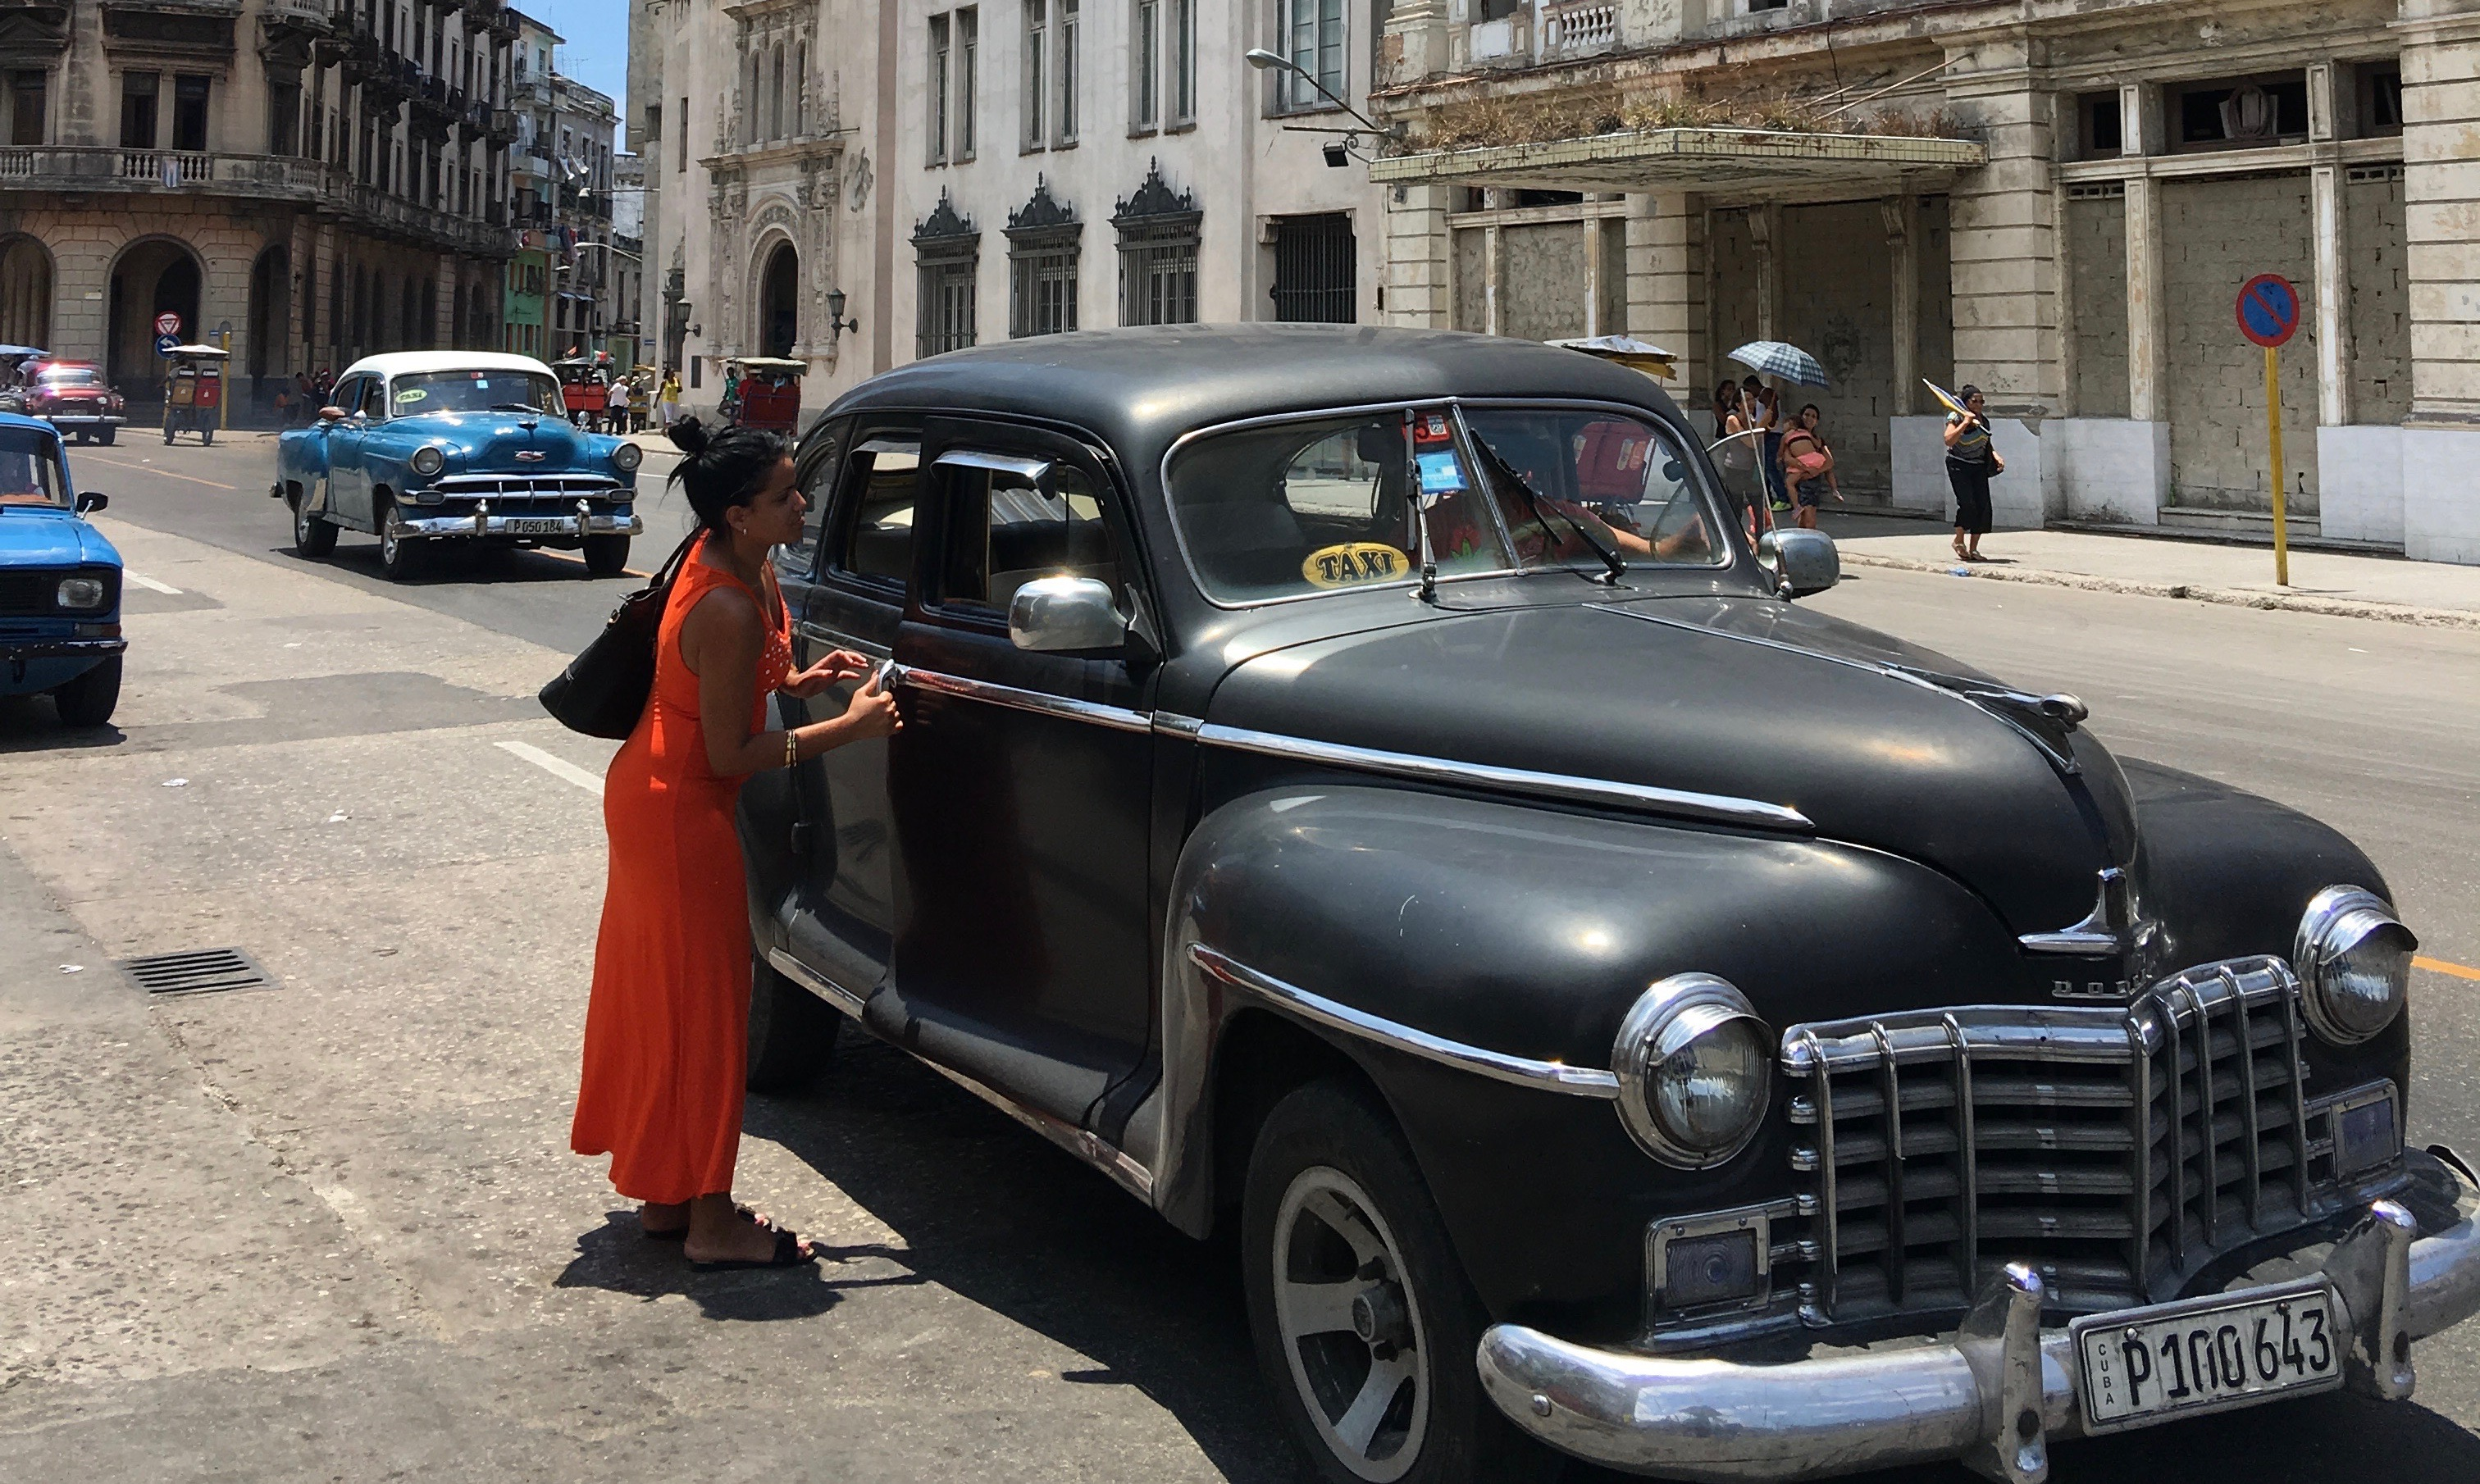 Visitors to Cuba will be impressed by the hustle and bustle of life in big cities like Havana and Santiago, but there are so many natural attractions that you should take the time to see them.